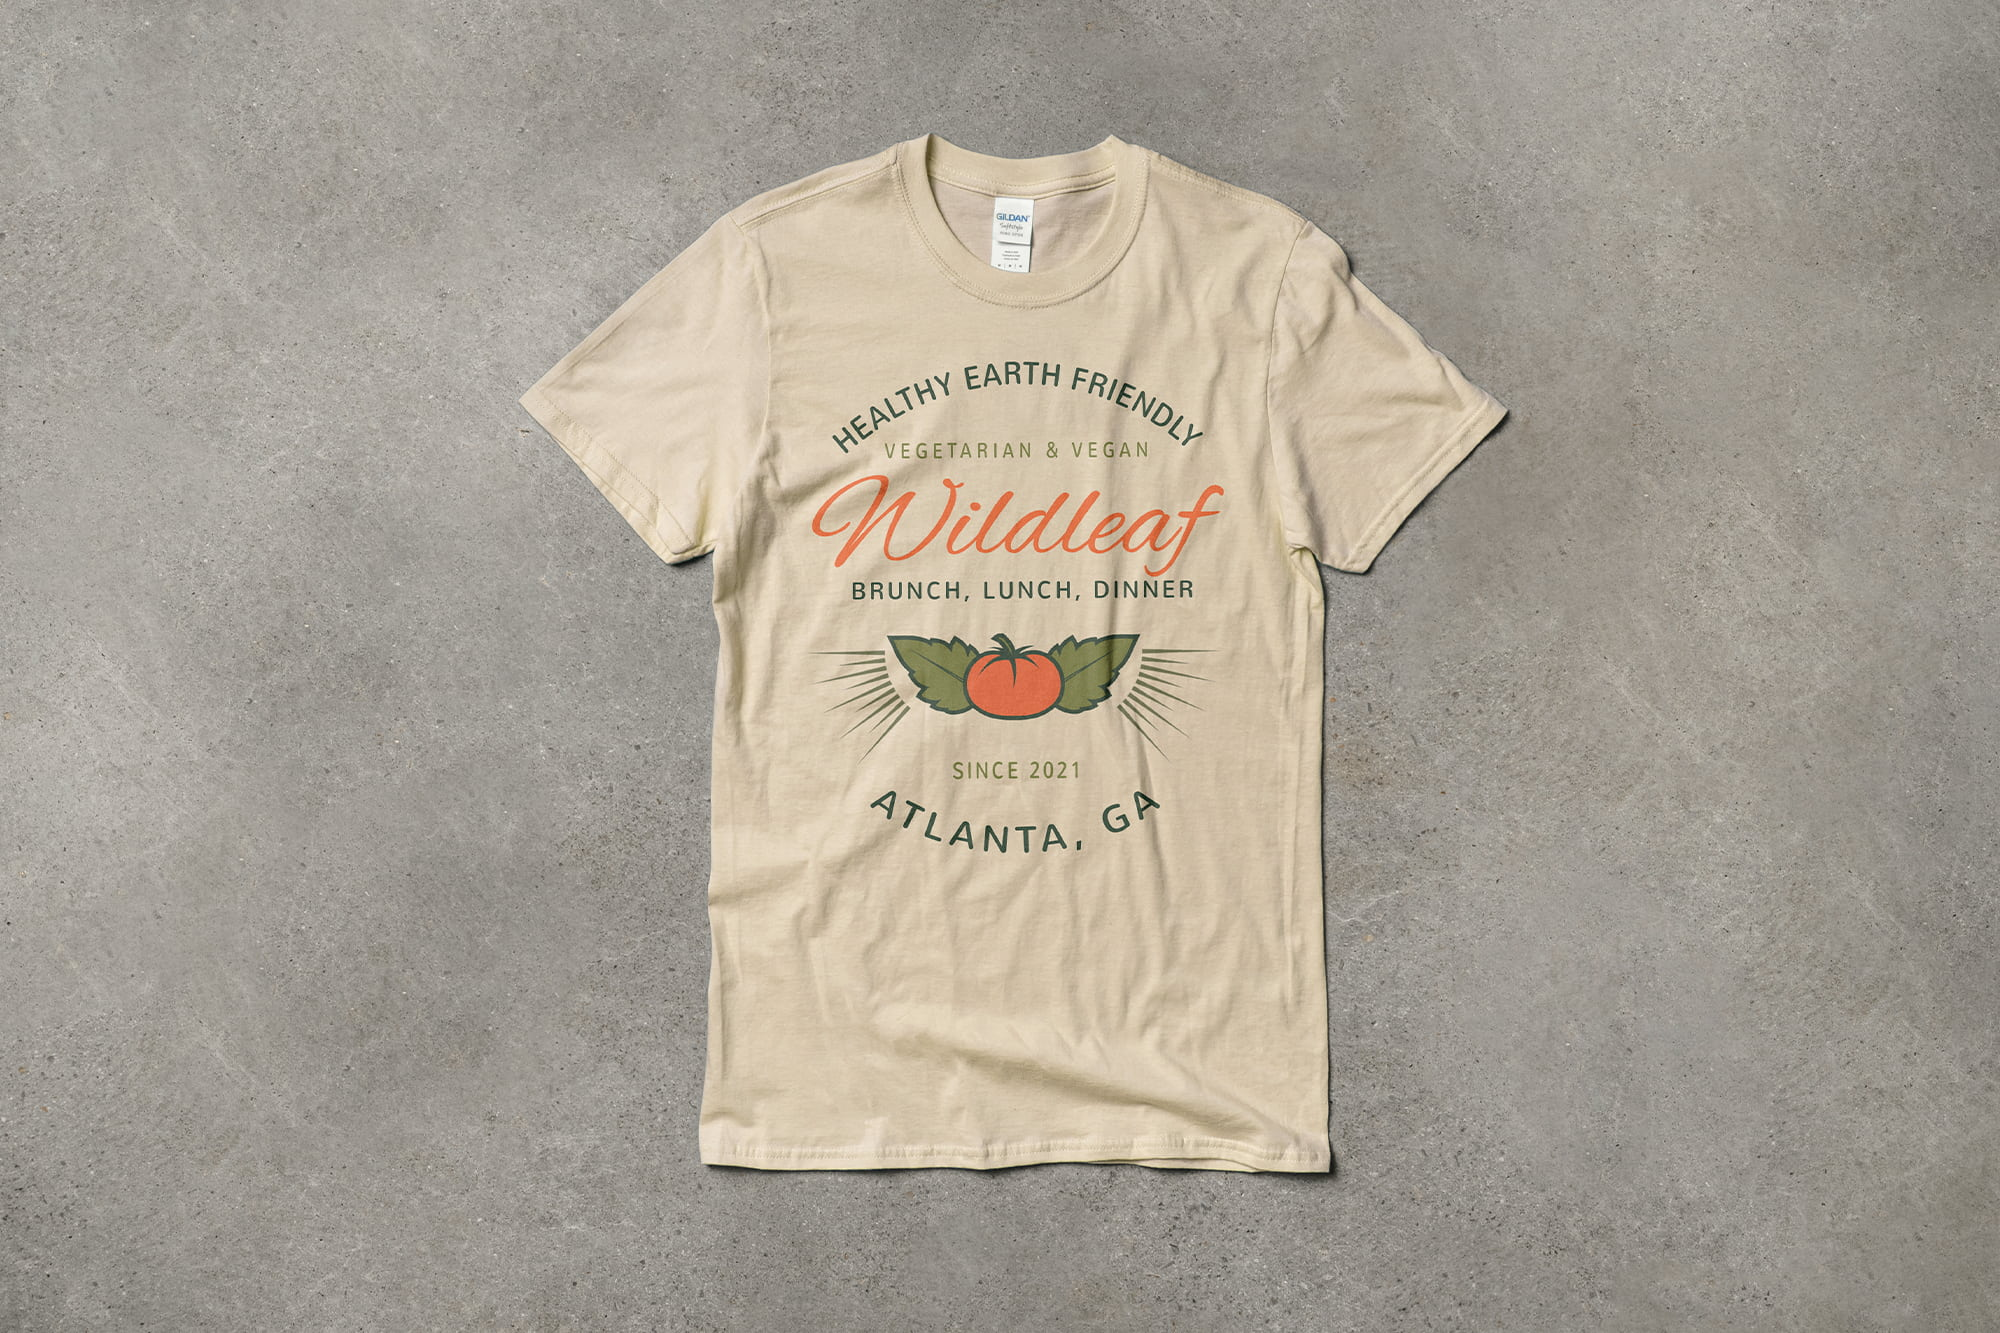 Example of using typography in your t-shirt design.